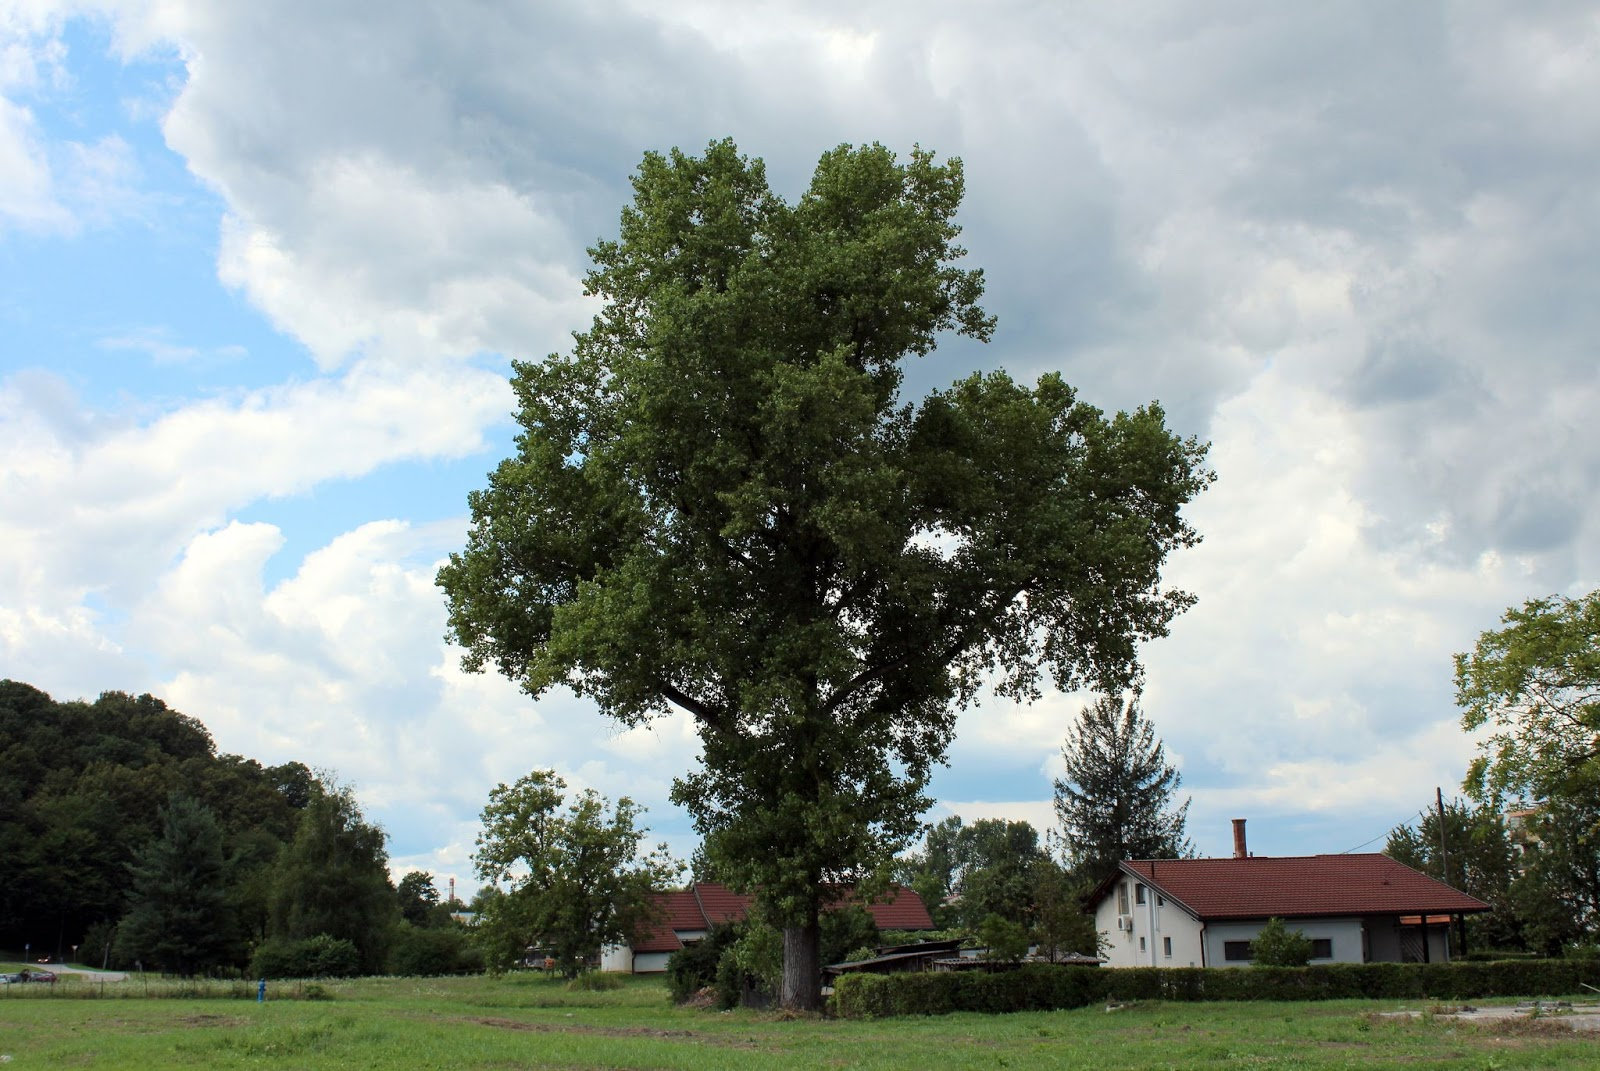 Image of a large tree growing close to a farm house in the countryside, ready for our tree risk assessment.